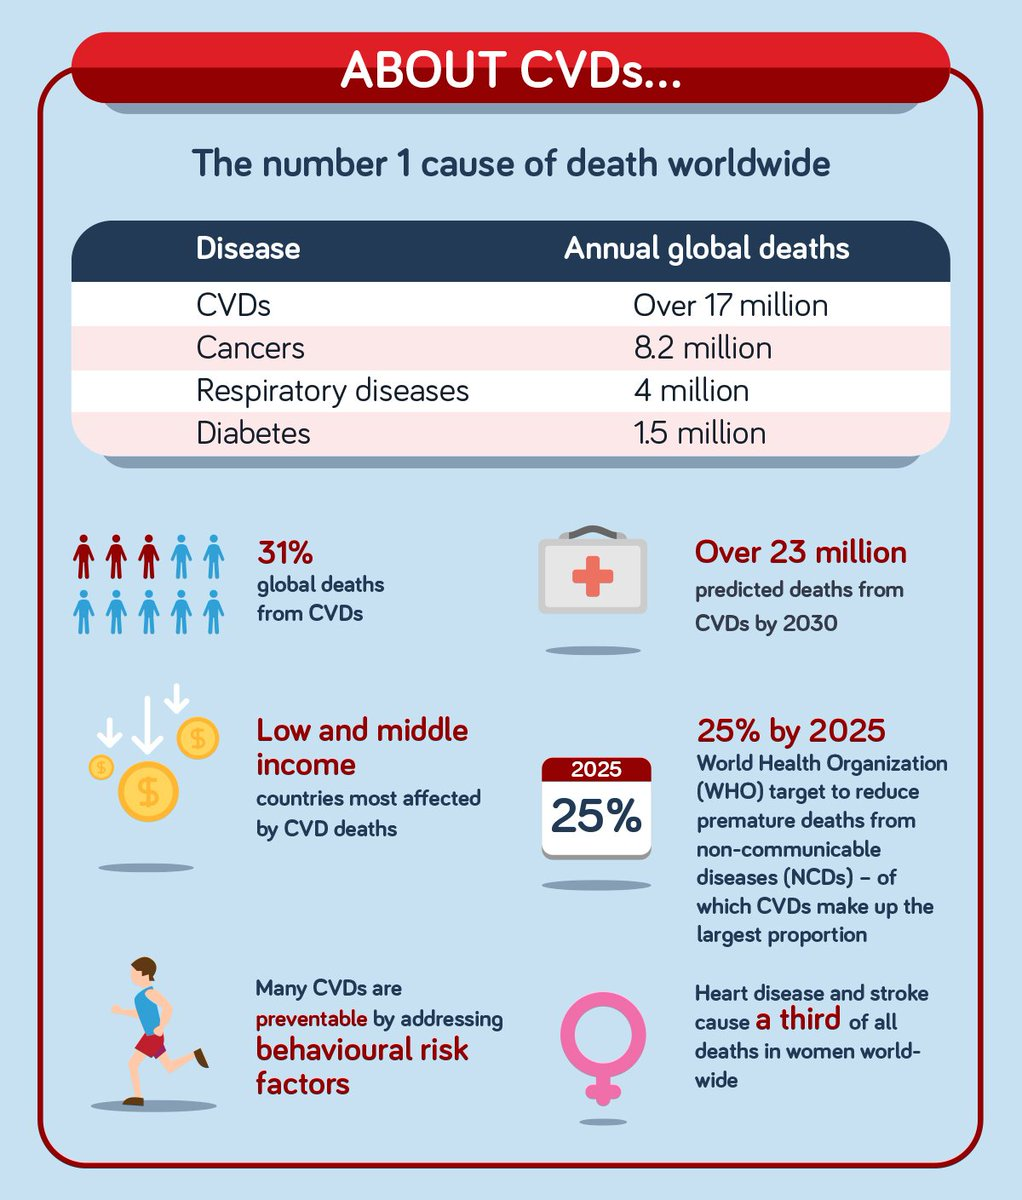 Take a look at the new WHF CVD infographic. Download in full https://t.co/R77PO8Hvmd #WCCMexico https://t.co/bVRXMumtsh